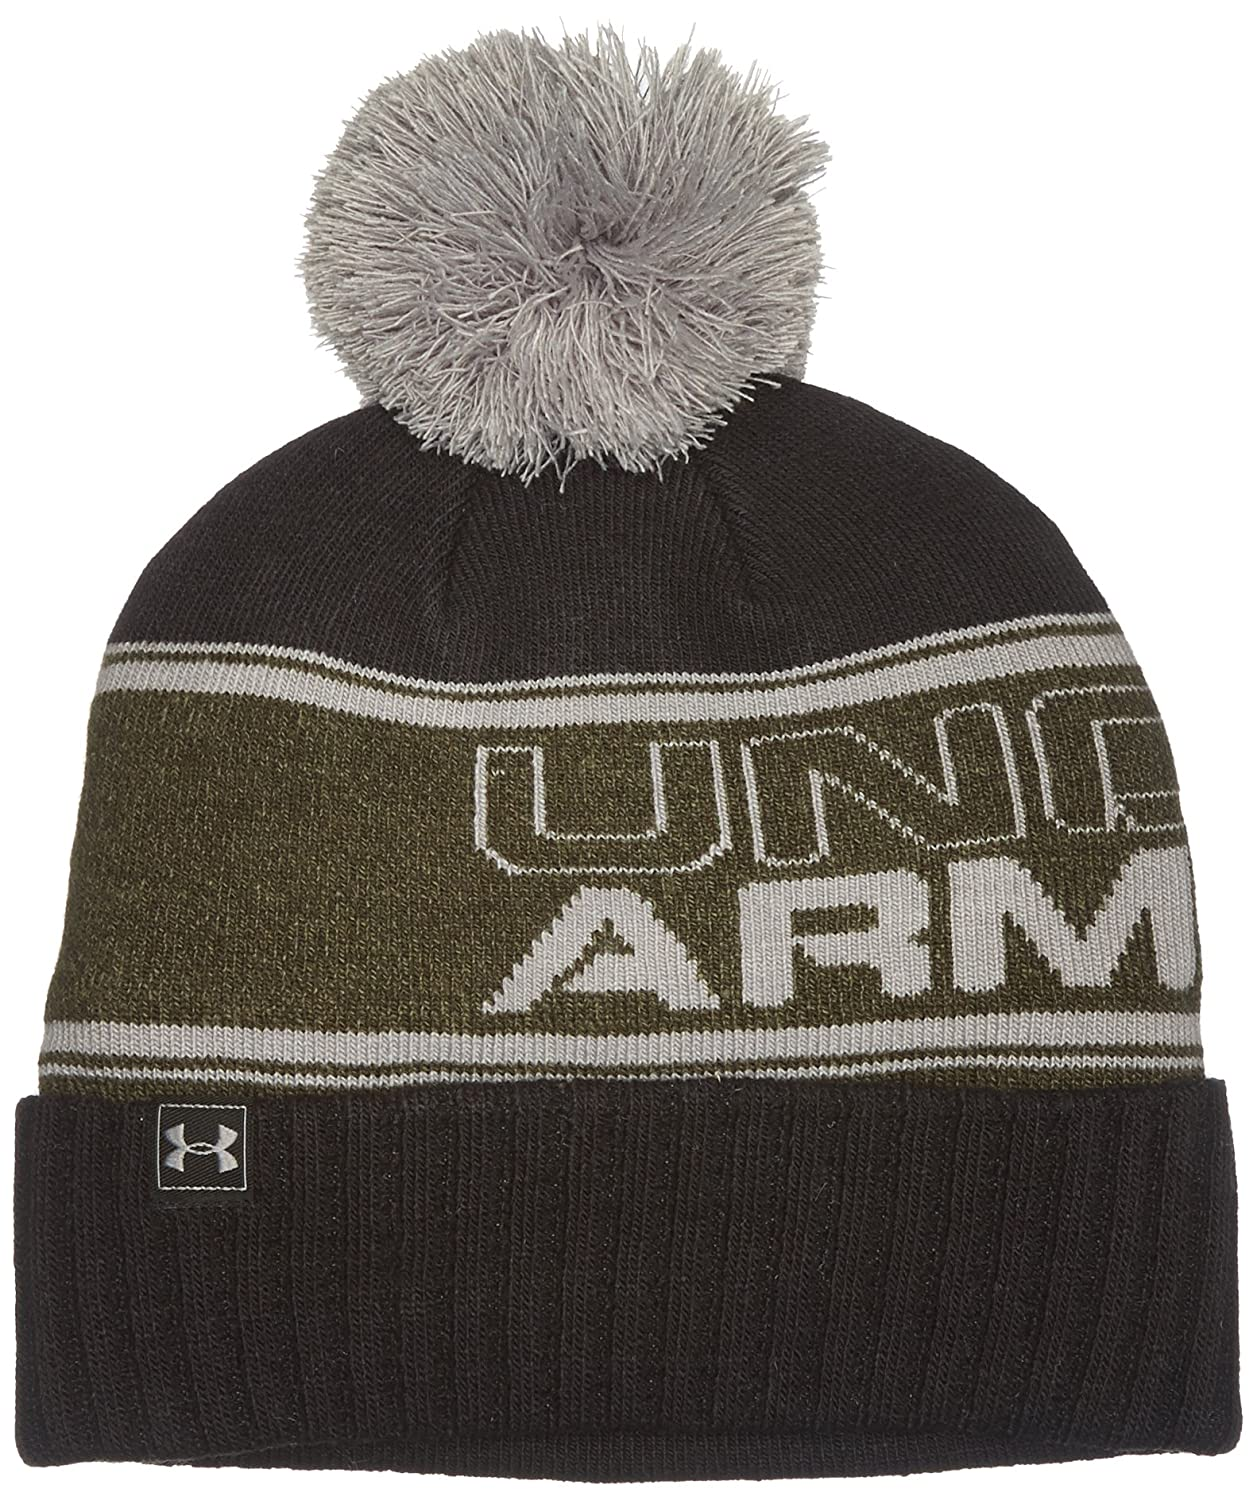 Under Armour Men's UA Pom Beanie, Berretto Uomo, Grigio (Stealth Gray/Steel/Hyper Green 008), Taglia Unica 1283110